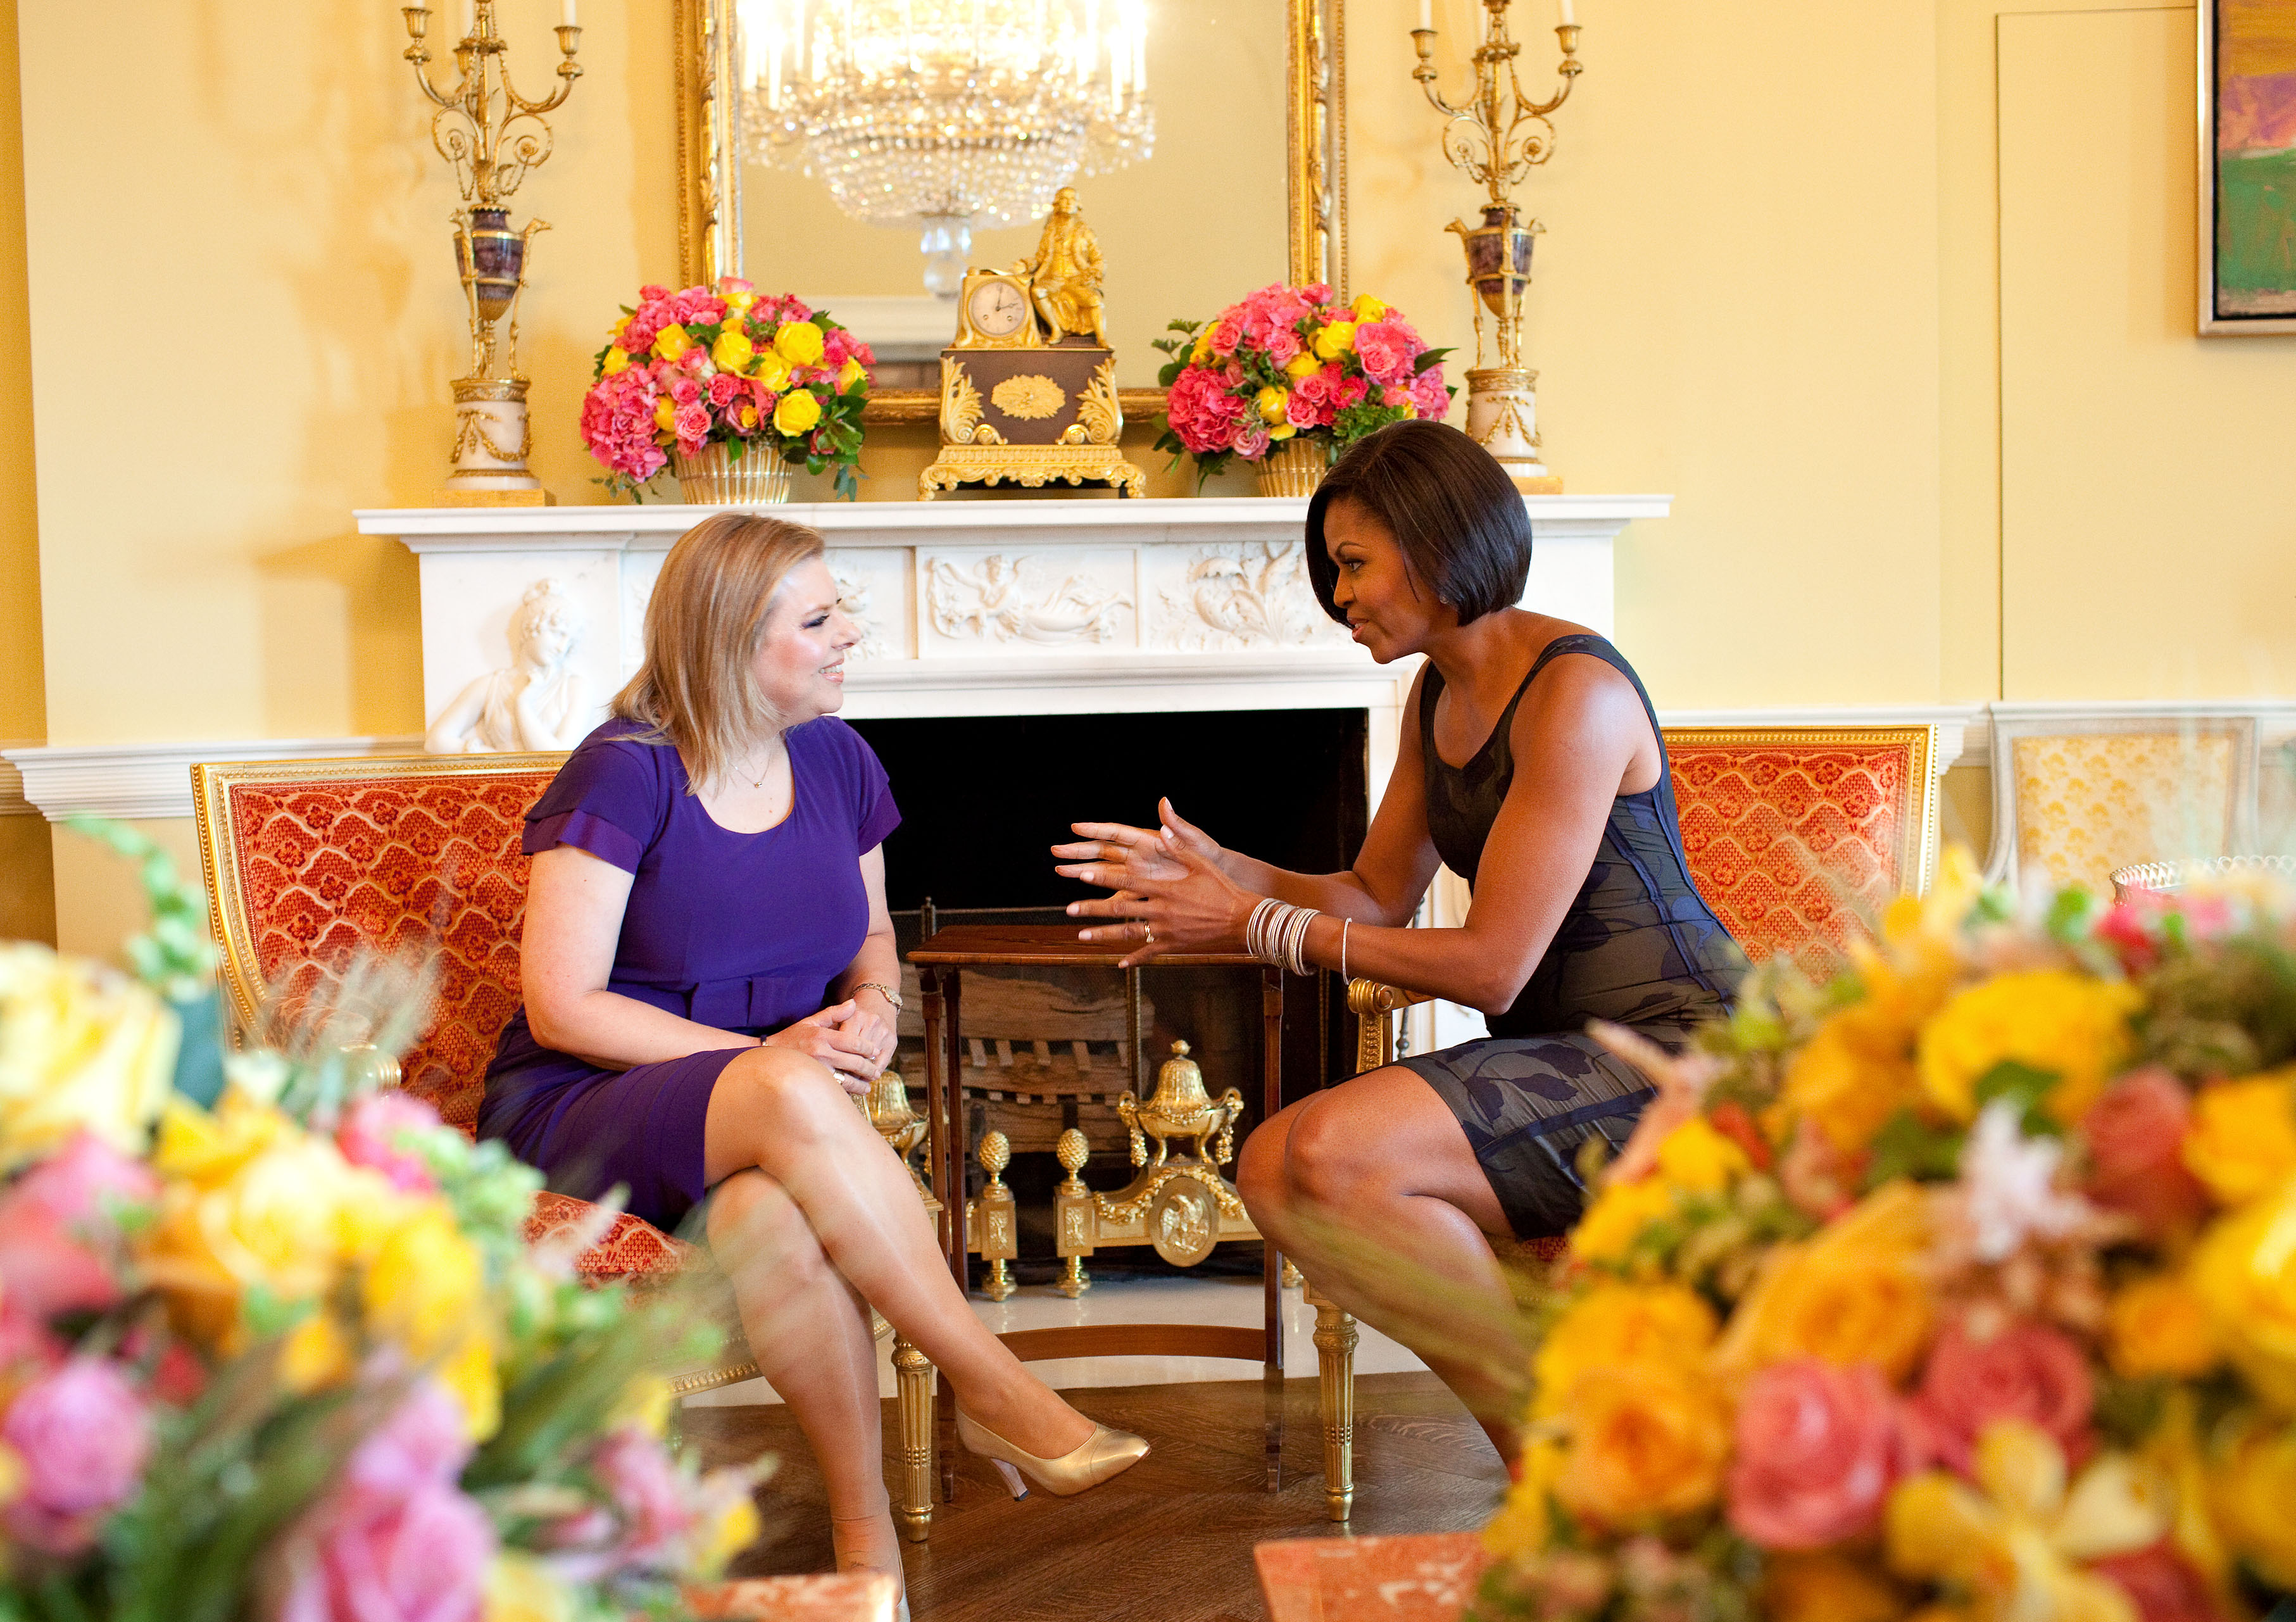 Free, Public Domain Image: First Lady Michelle Obama Sitting and.